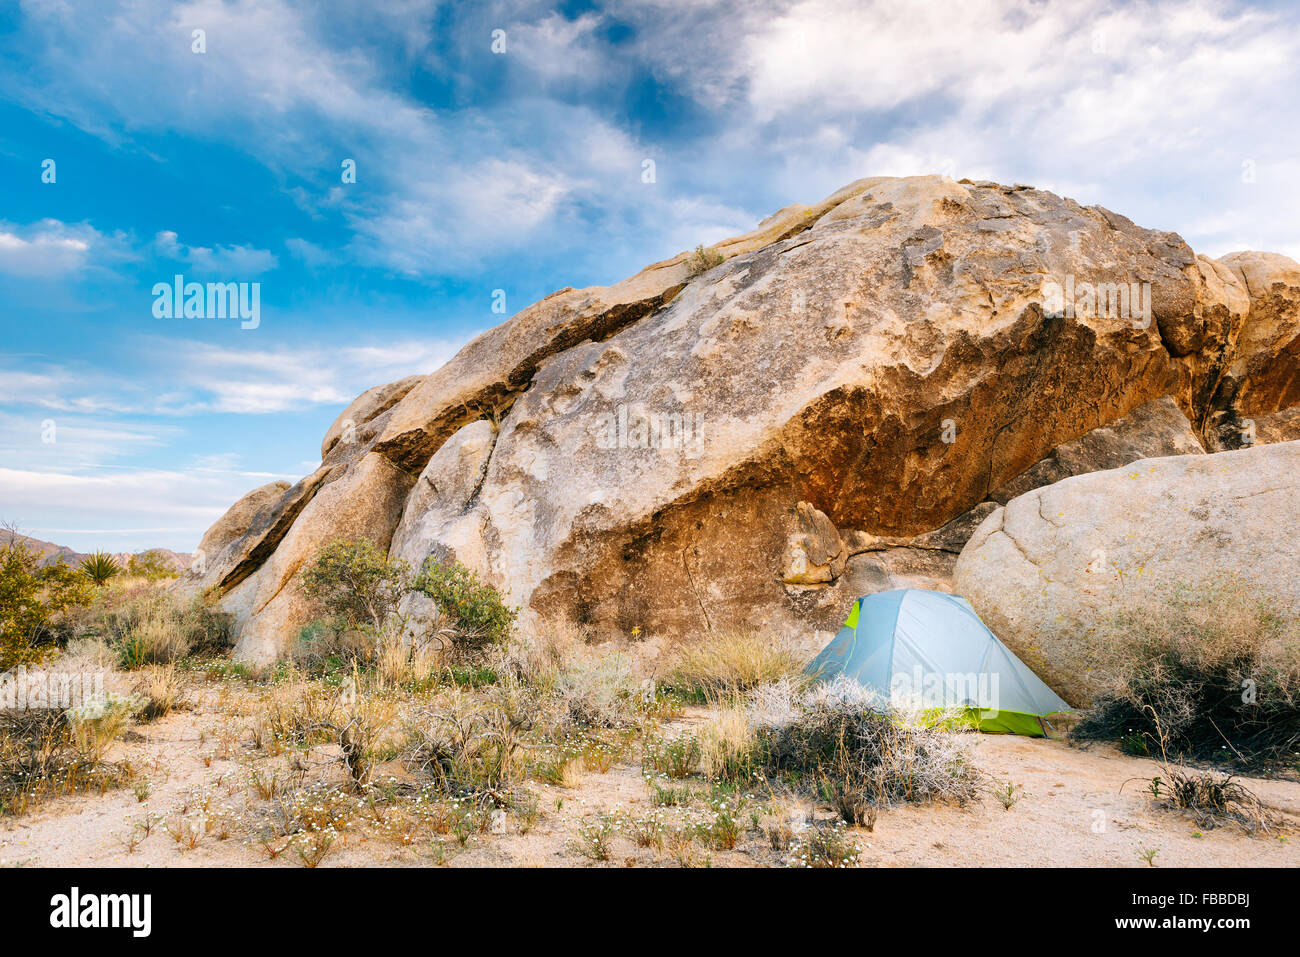 Camping along the Boy Scout Trail in the Wonderland of Rocks, Joshua Tree National Park, California - Stock Image